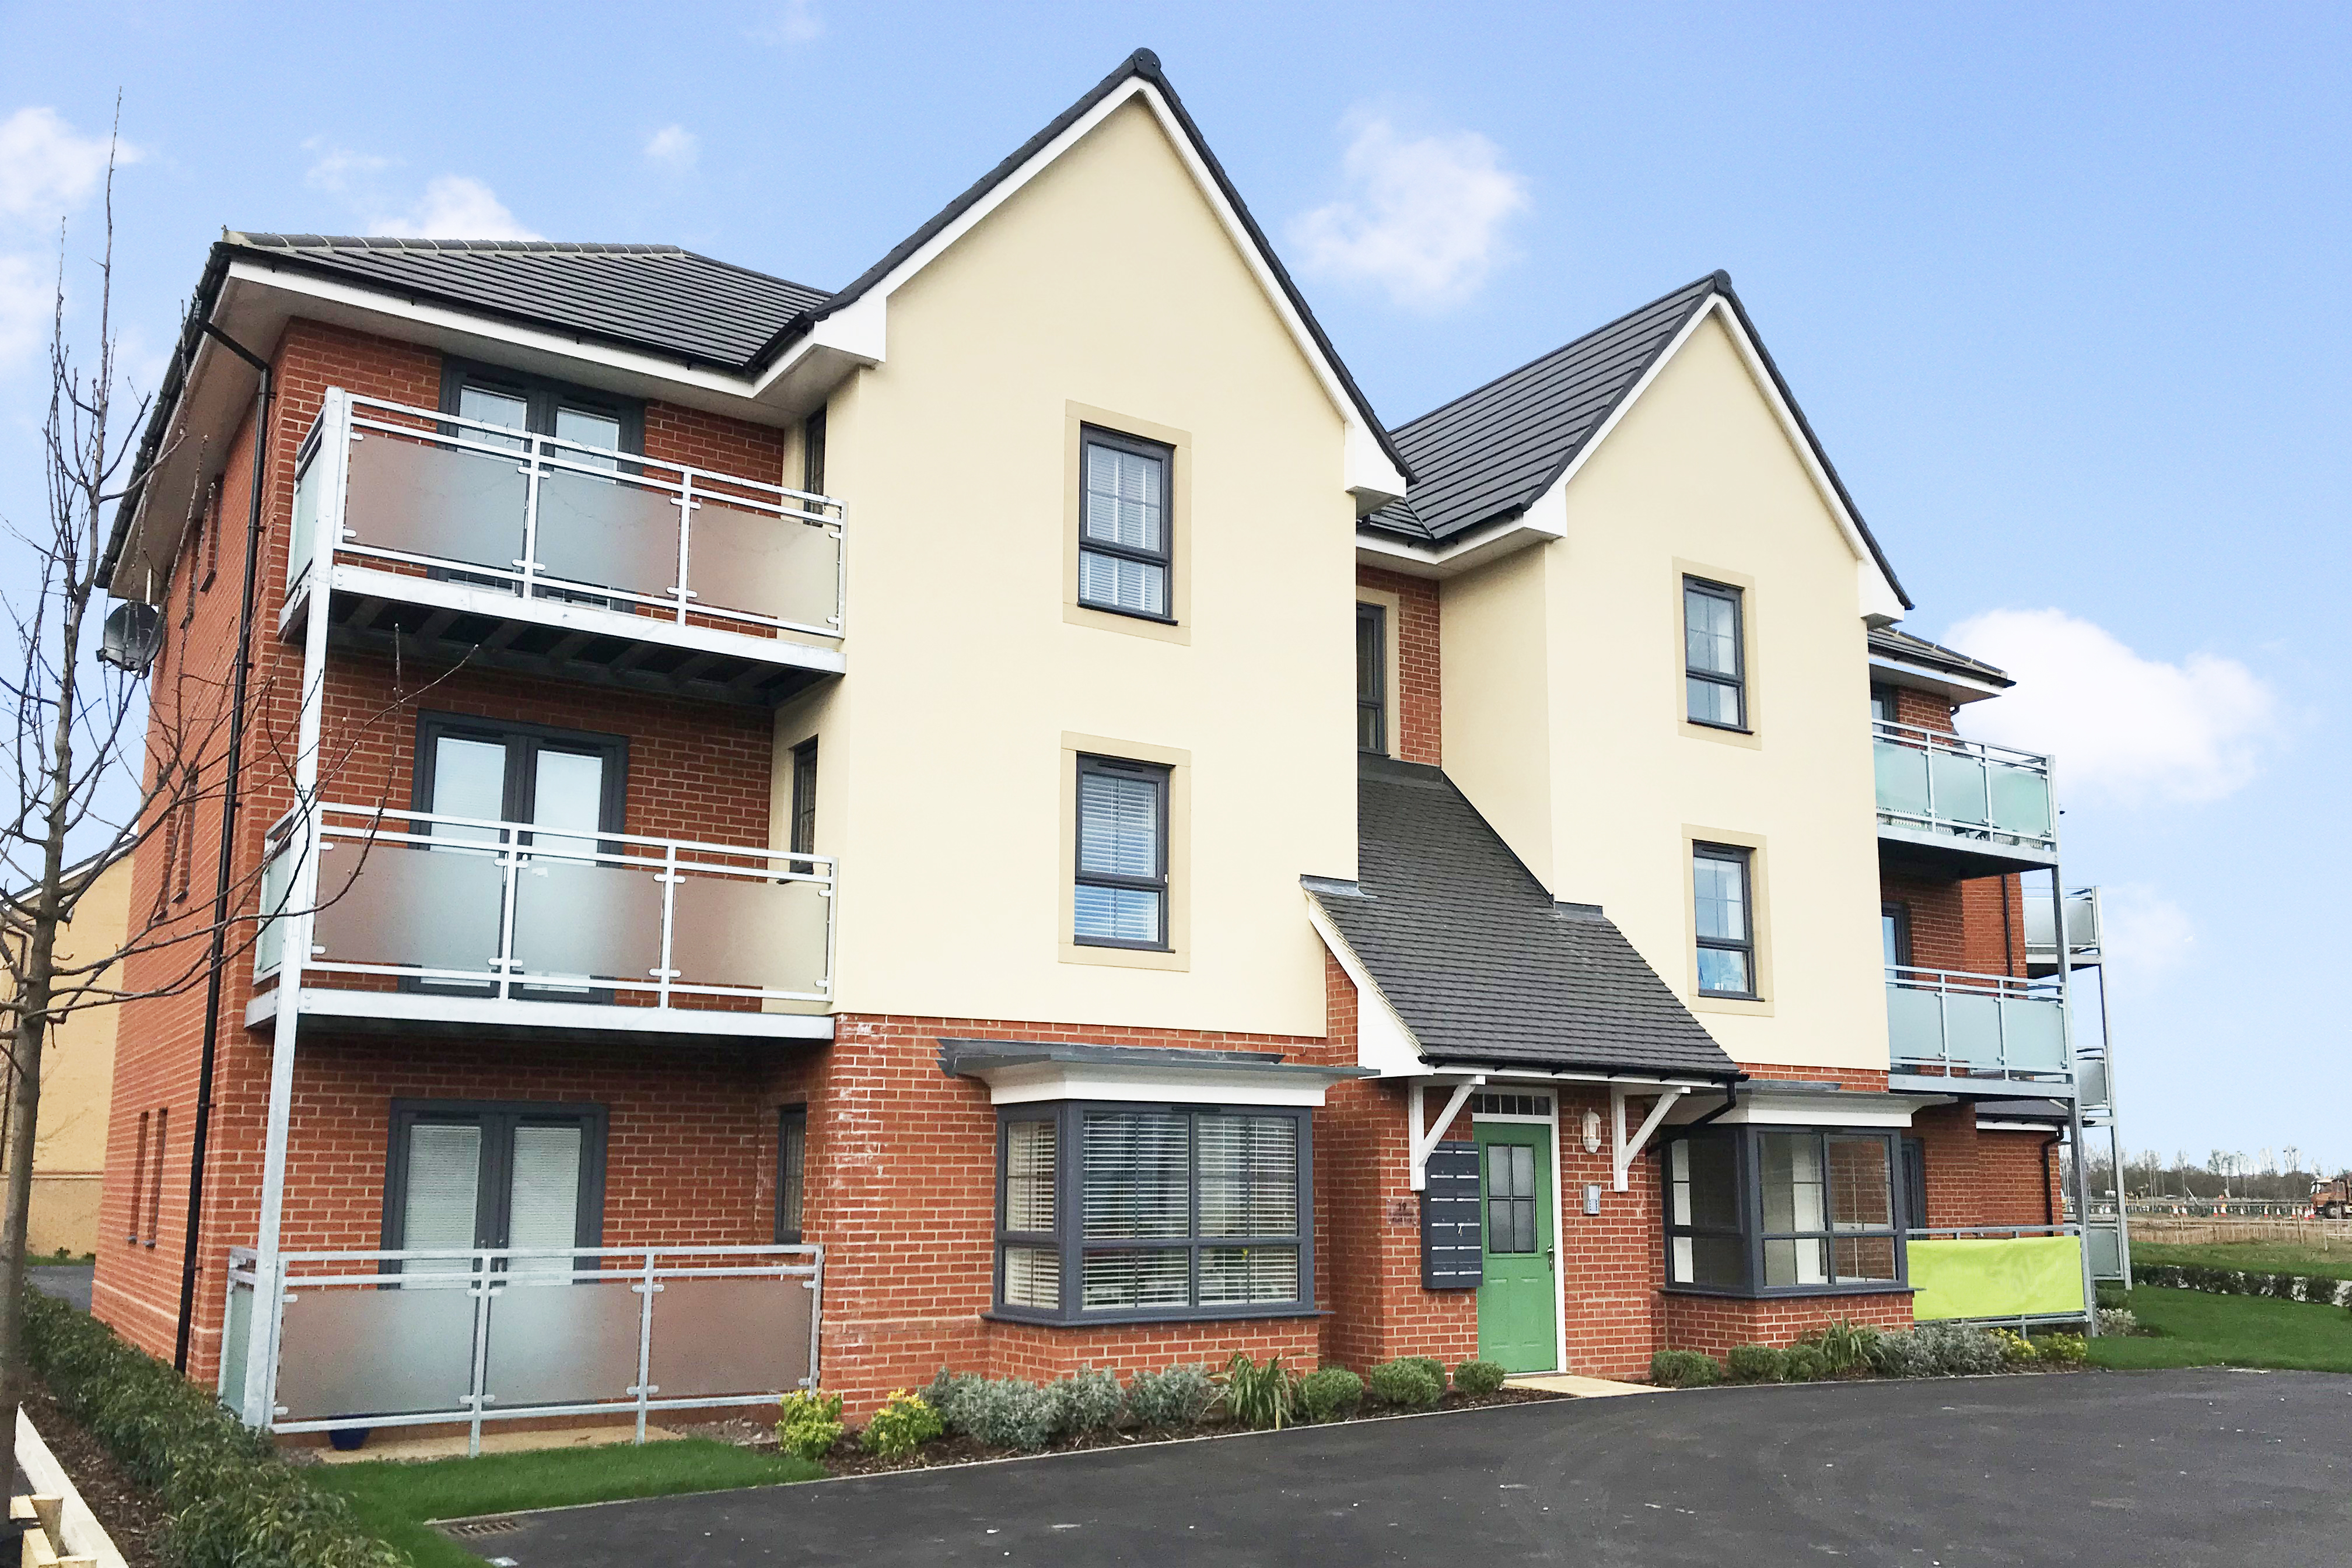 External view of 2 bedroom Falkirk Apartments at Eagles' Rest